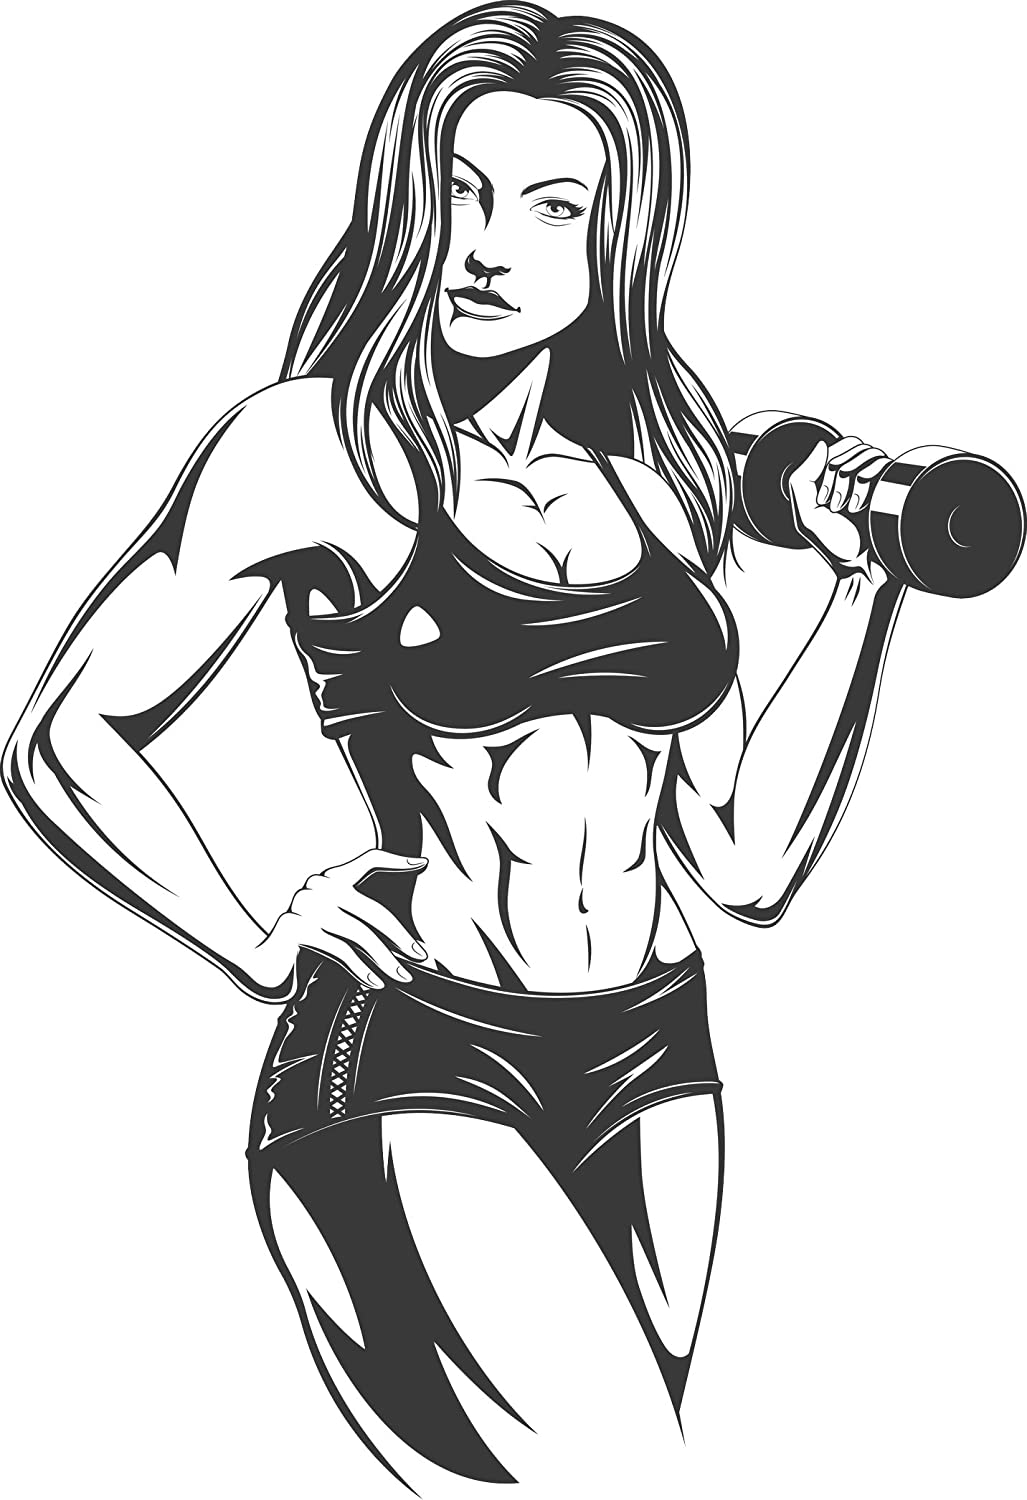 Amazon Com Divine Designs Cool Sexy Weight Lifting Fit Anime Woman Cartoon 2 Vinyl Decal Sticker 12 Tall Automotive Titles should be in good taste and include the woman's name if known. weight lifting fit anime woman cartoon